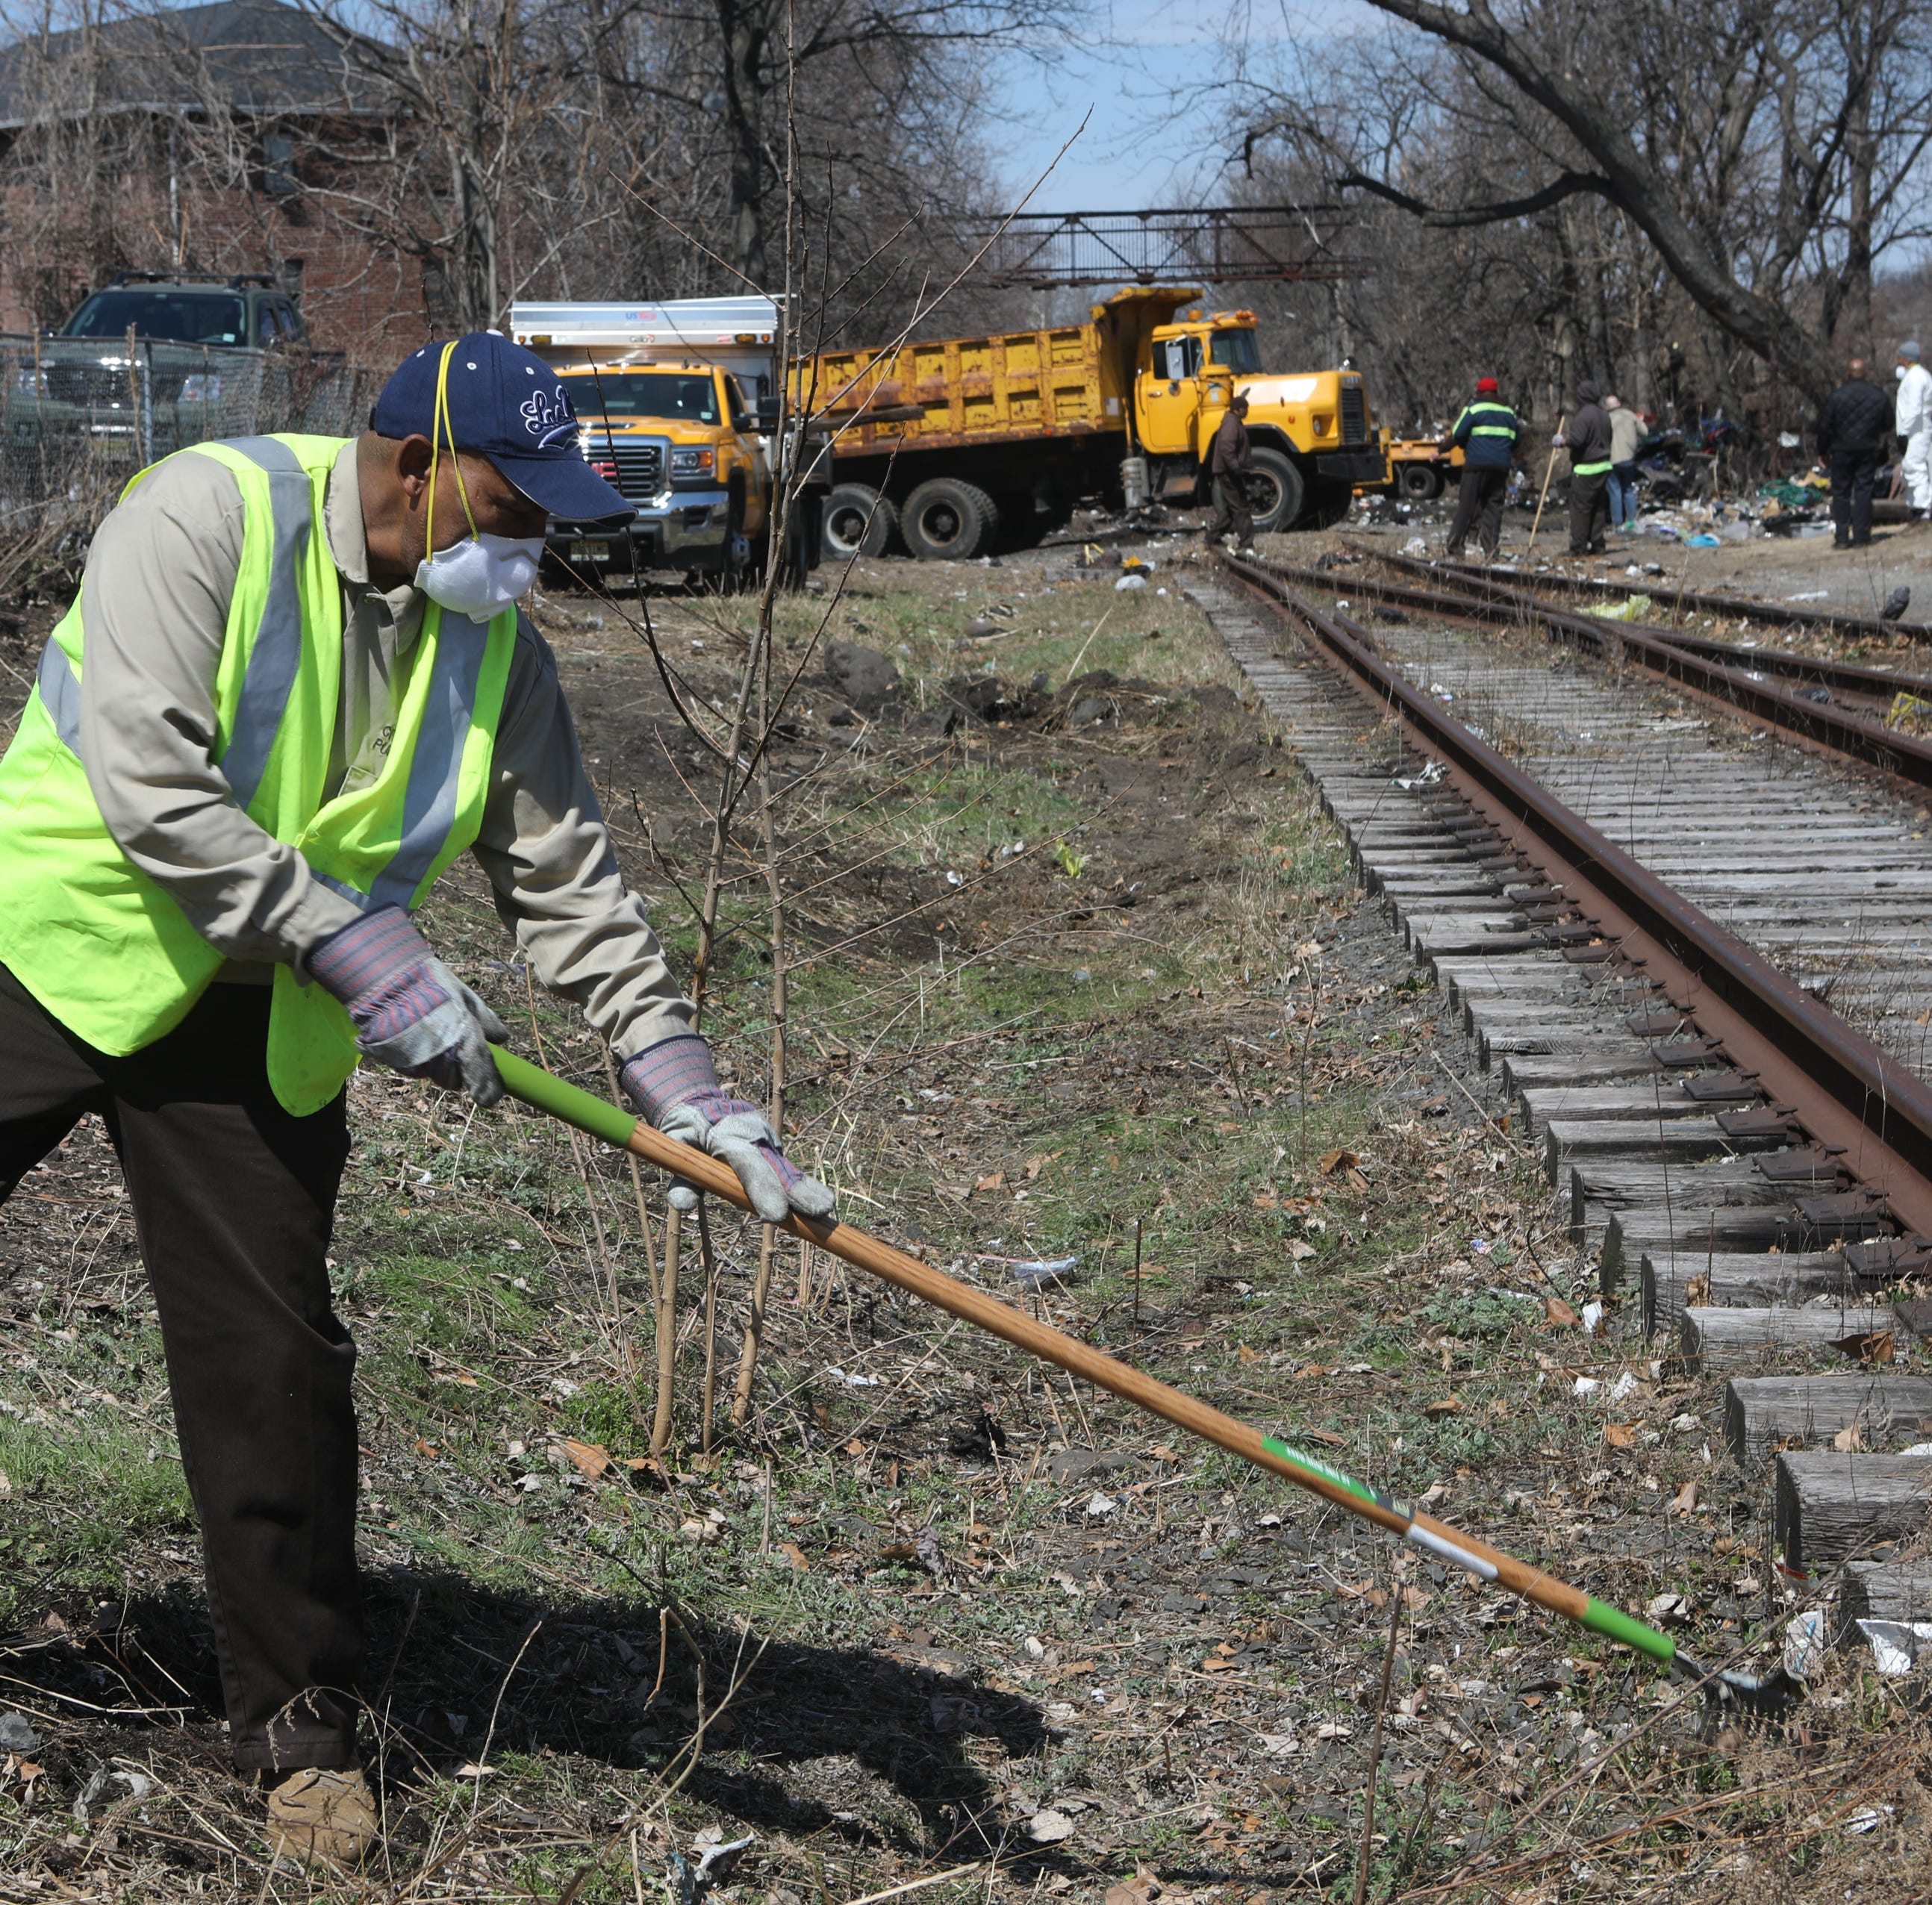 Life on the other side of Passaic's abandoned railroad track may soon change